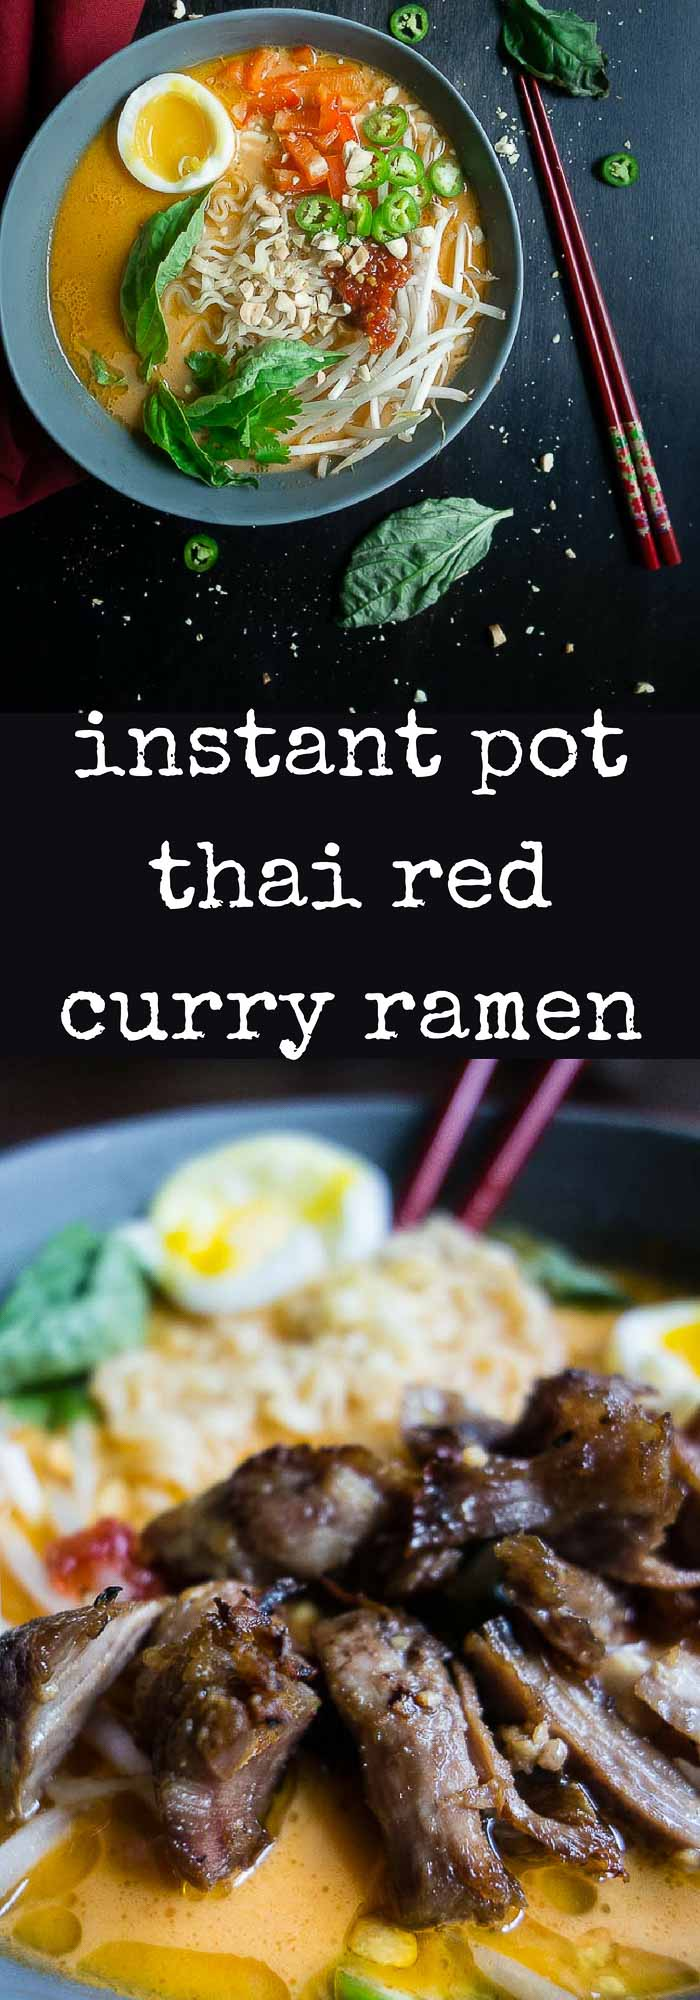 Instant Pot Coconut Curry Ramen